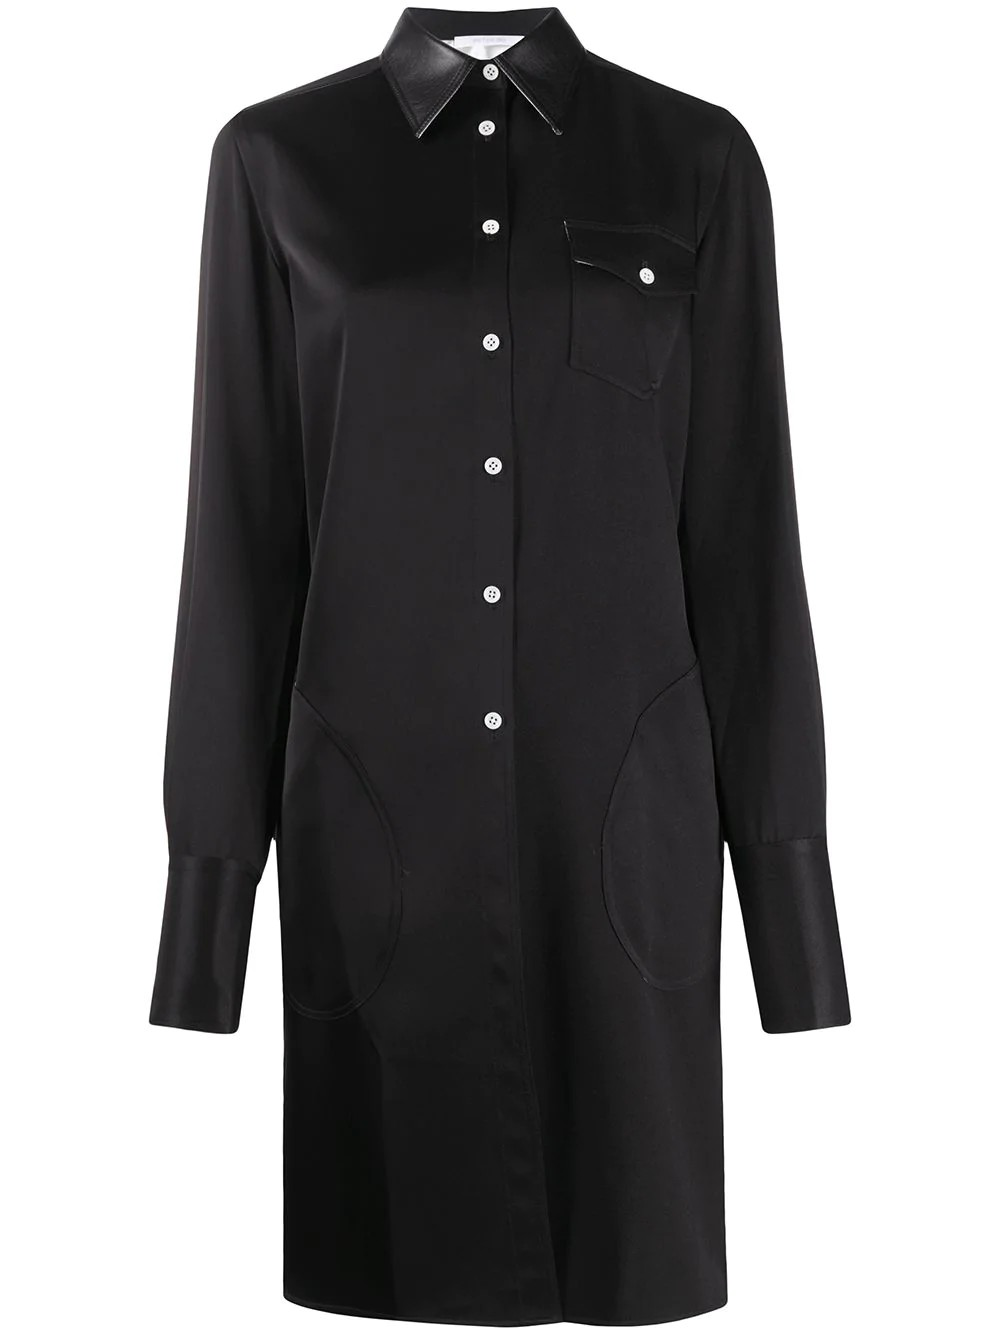 FITTED CLASSIC SHIRT DRESS